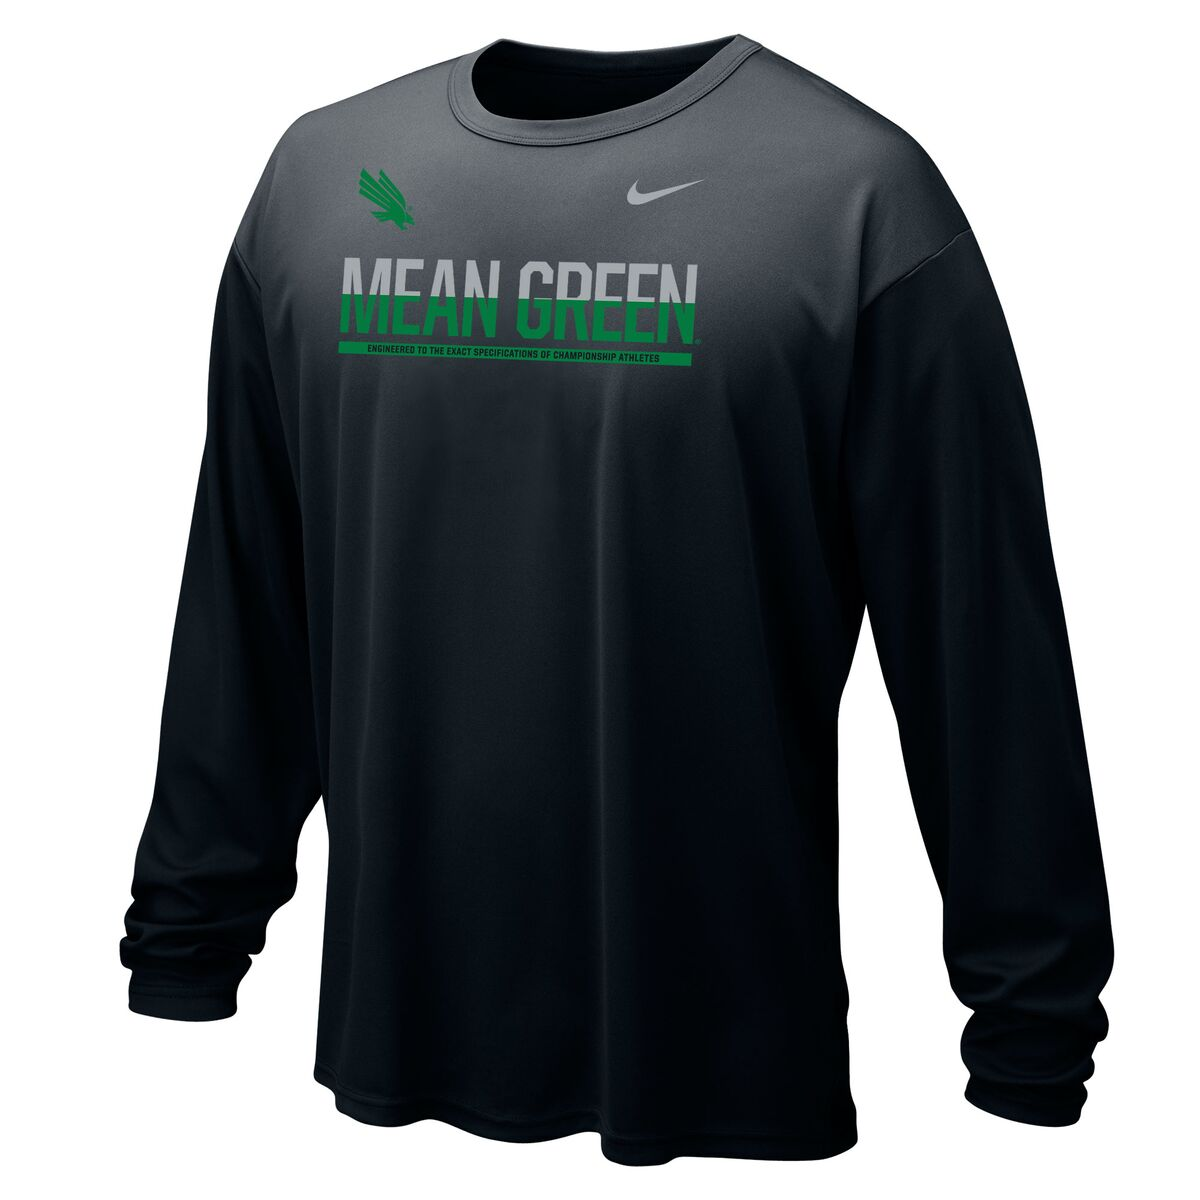 MEAN GREEN LONG SLEEVE